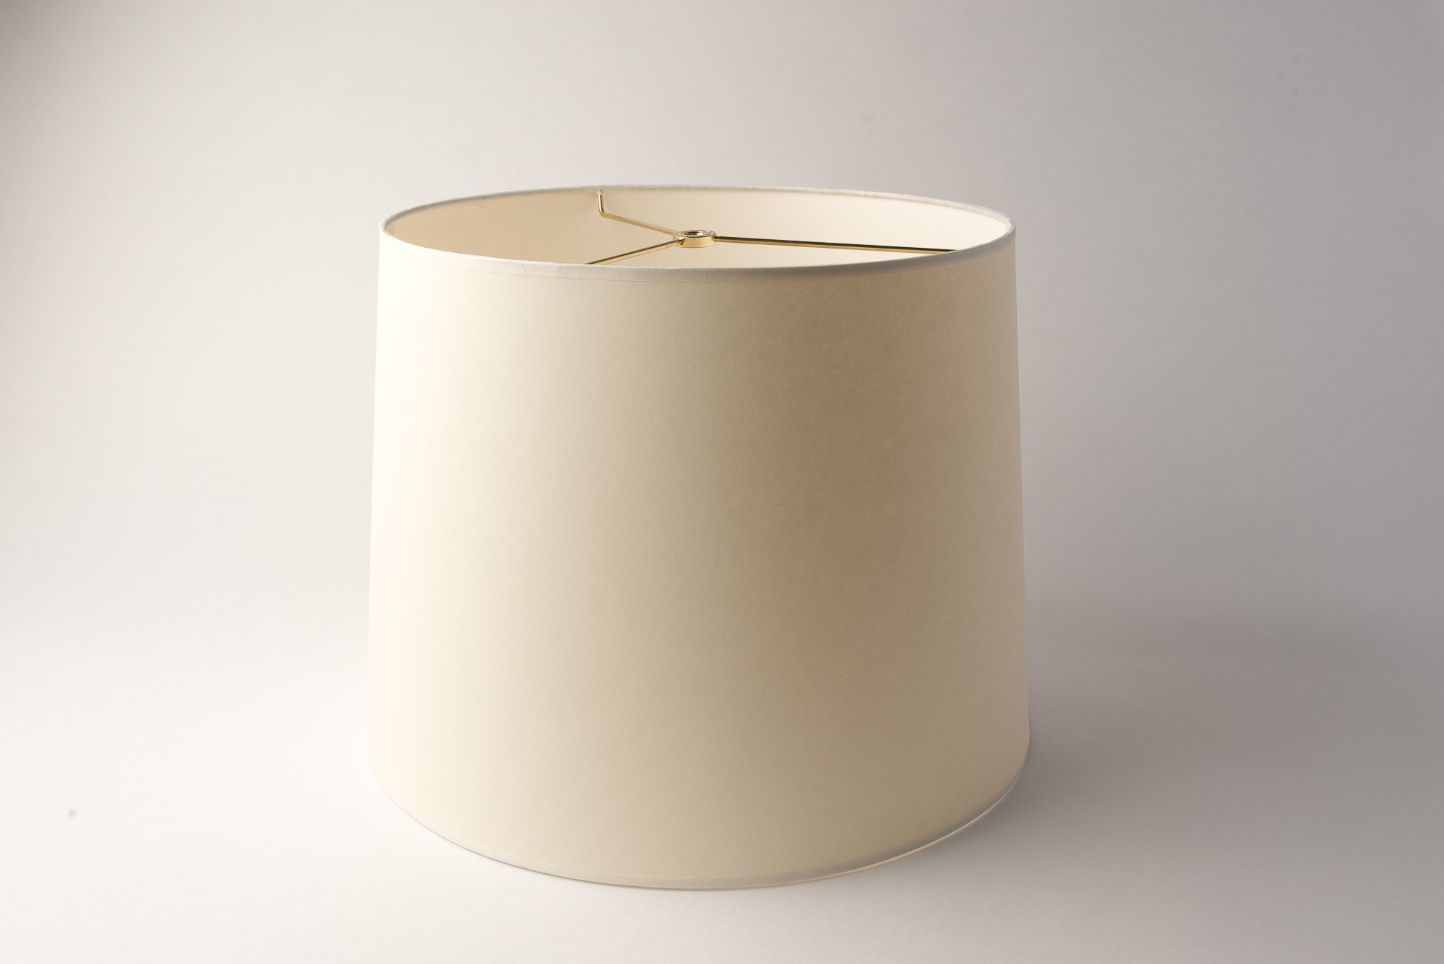 Paper Tall Drum